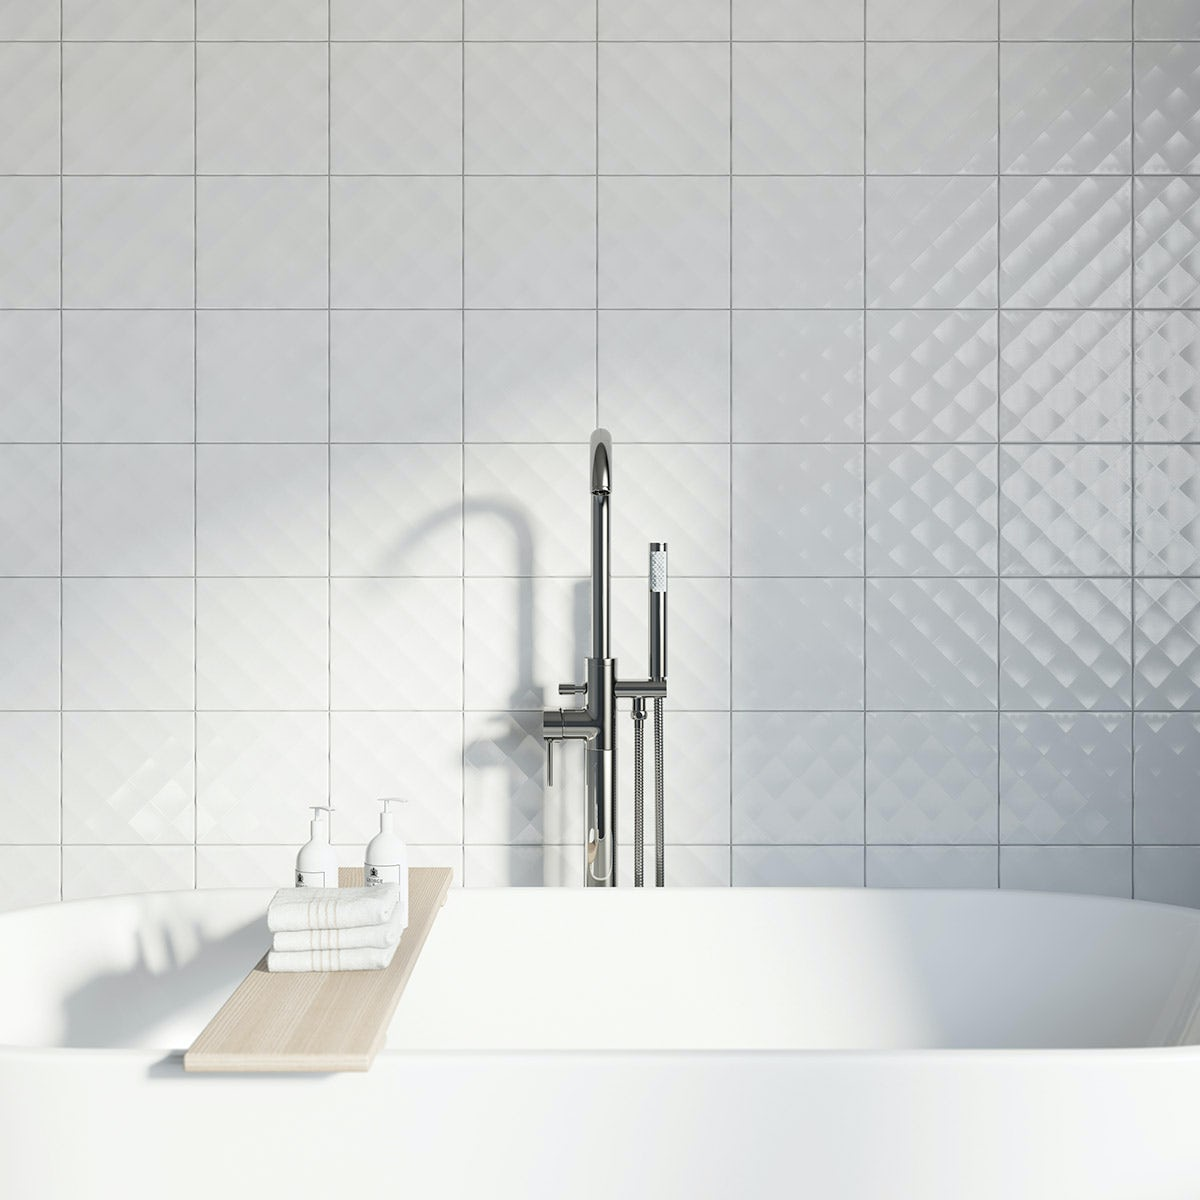 wall tiled with white ridged tiles and low hanging lamp